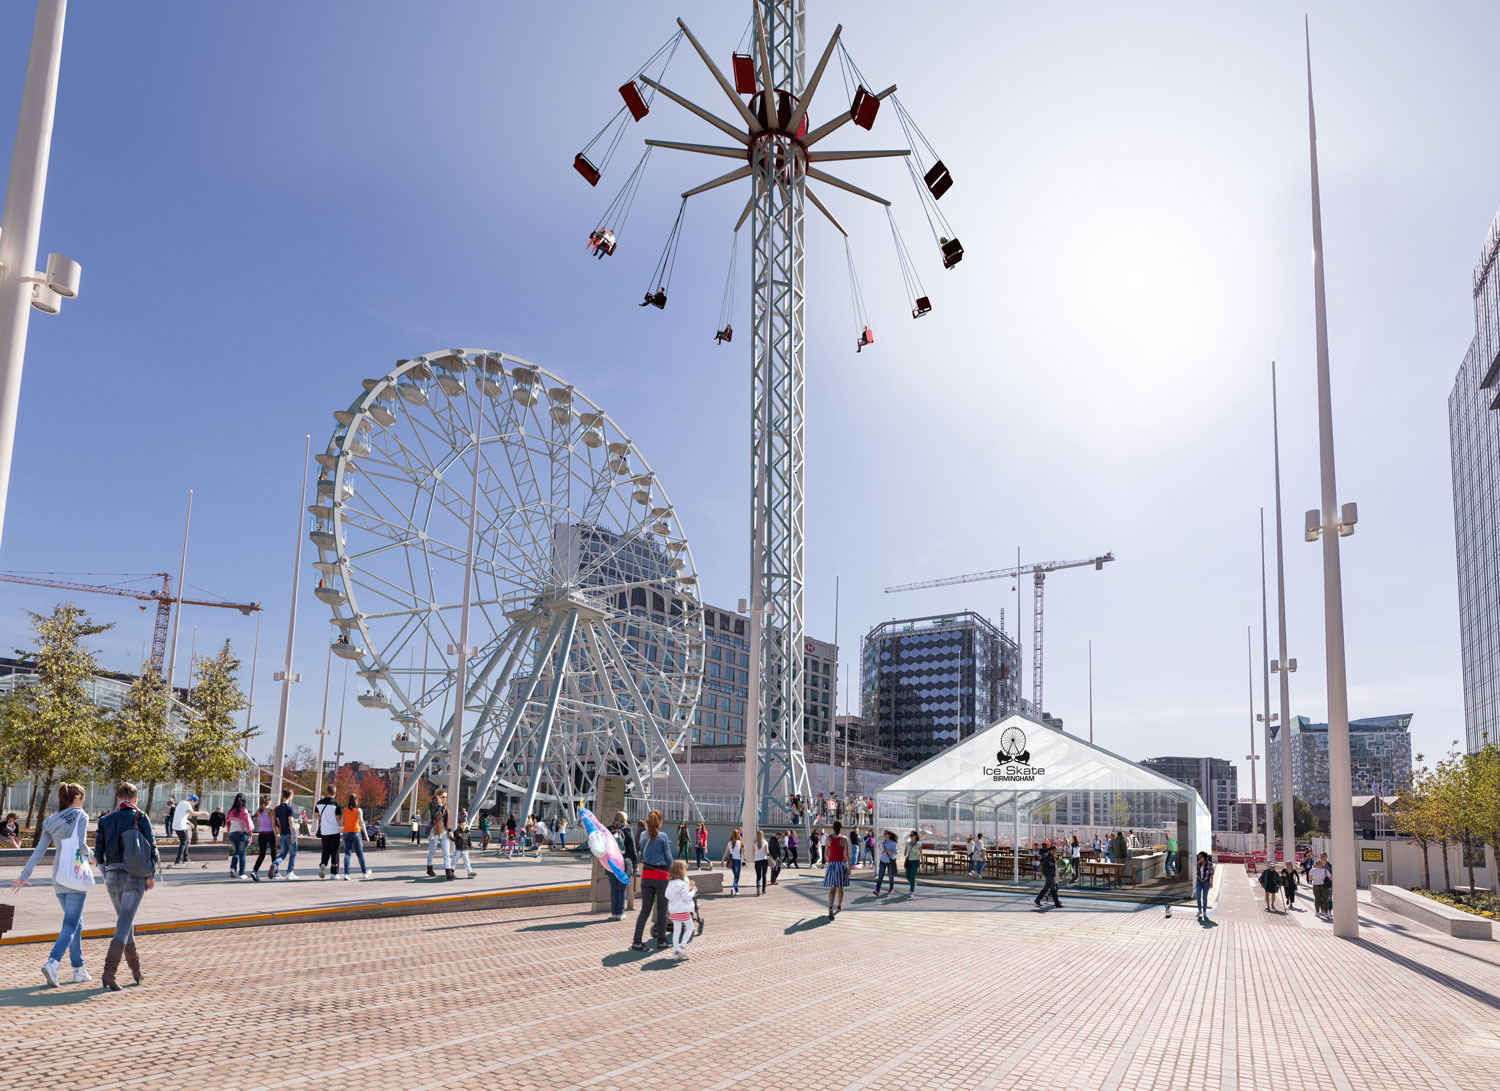 Existing/Proposed – Ground Level View of Ice Bar, City Flyer and Big Wheel